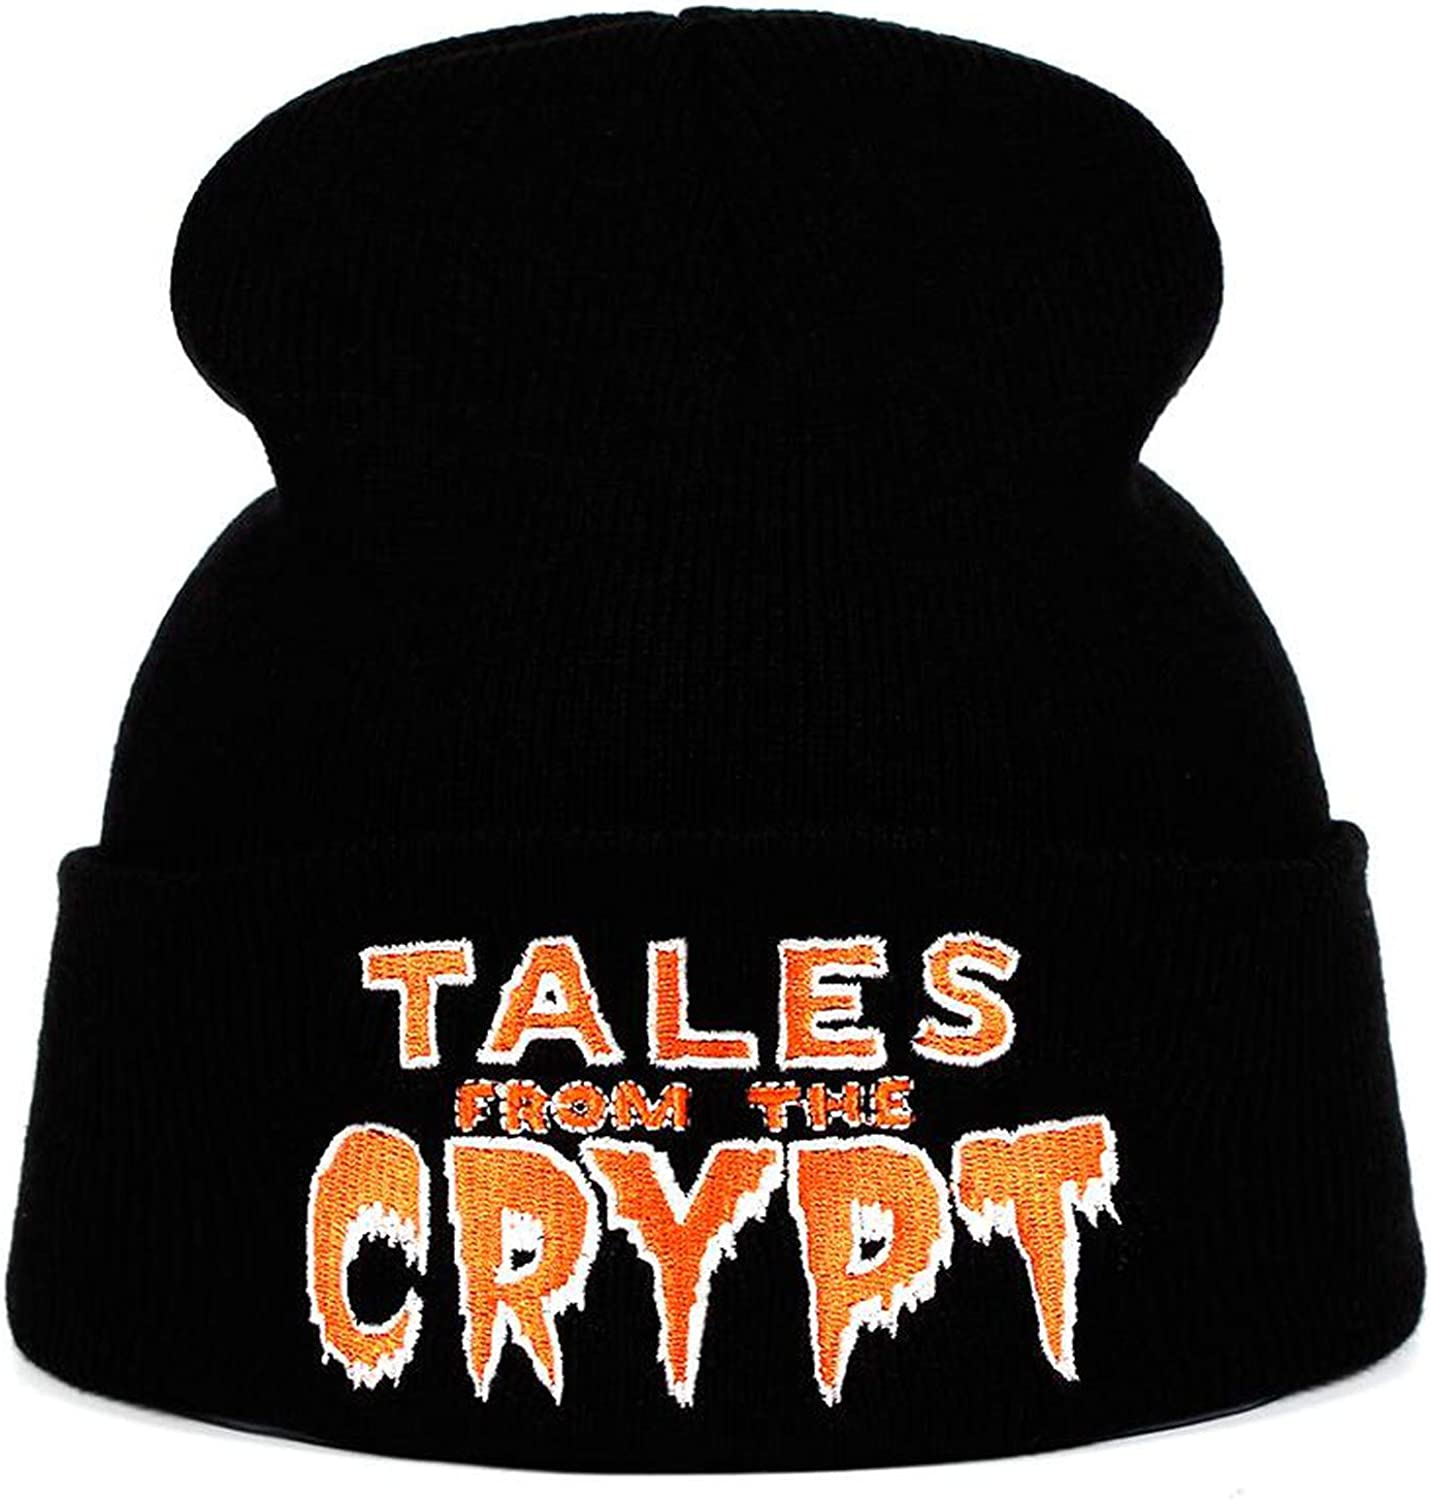 Eric Carl The Crypt Knitted Hat Hats Elastic Embroidery Beanie Warm Winter Skullies Cartoon Image Ski Cap